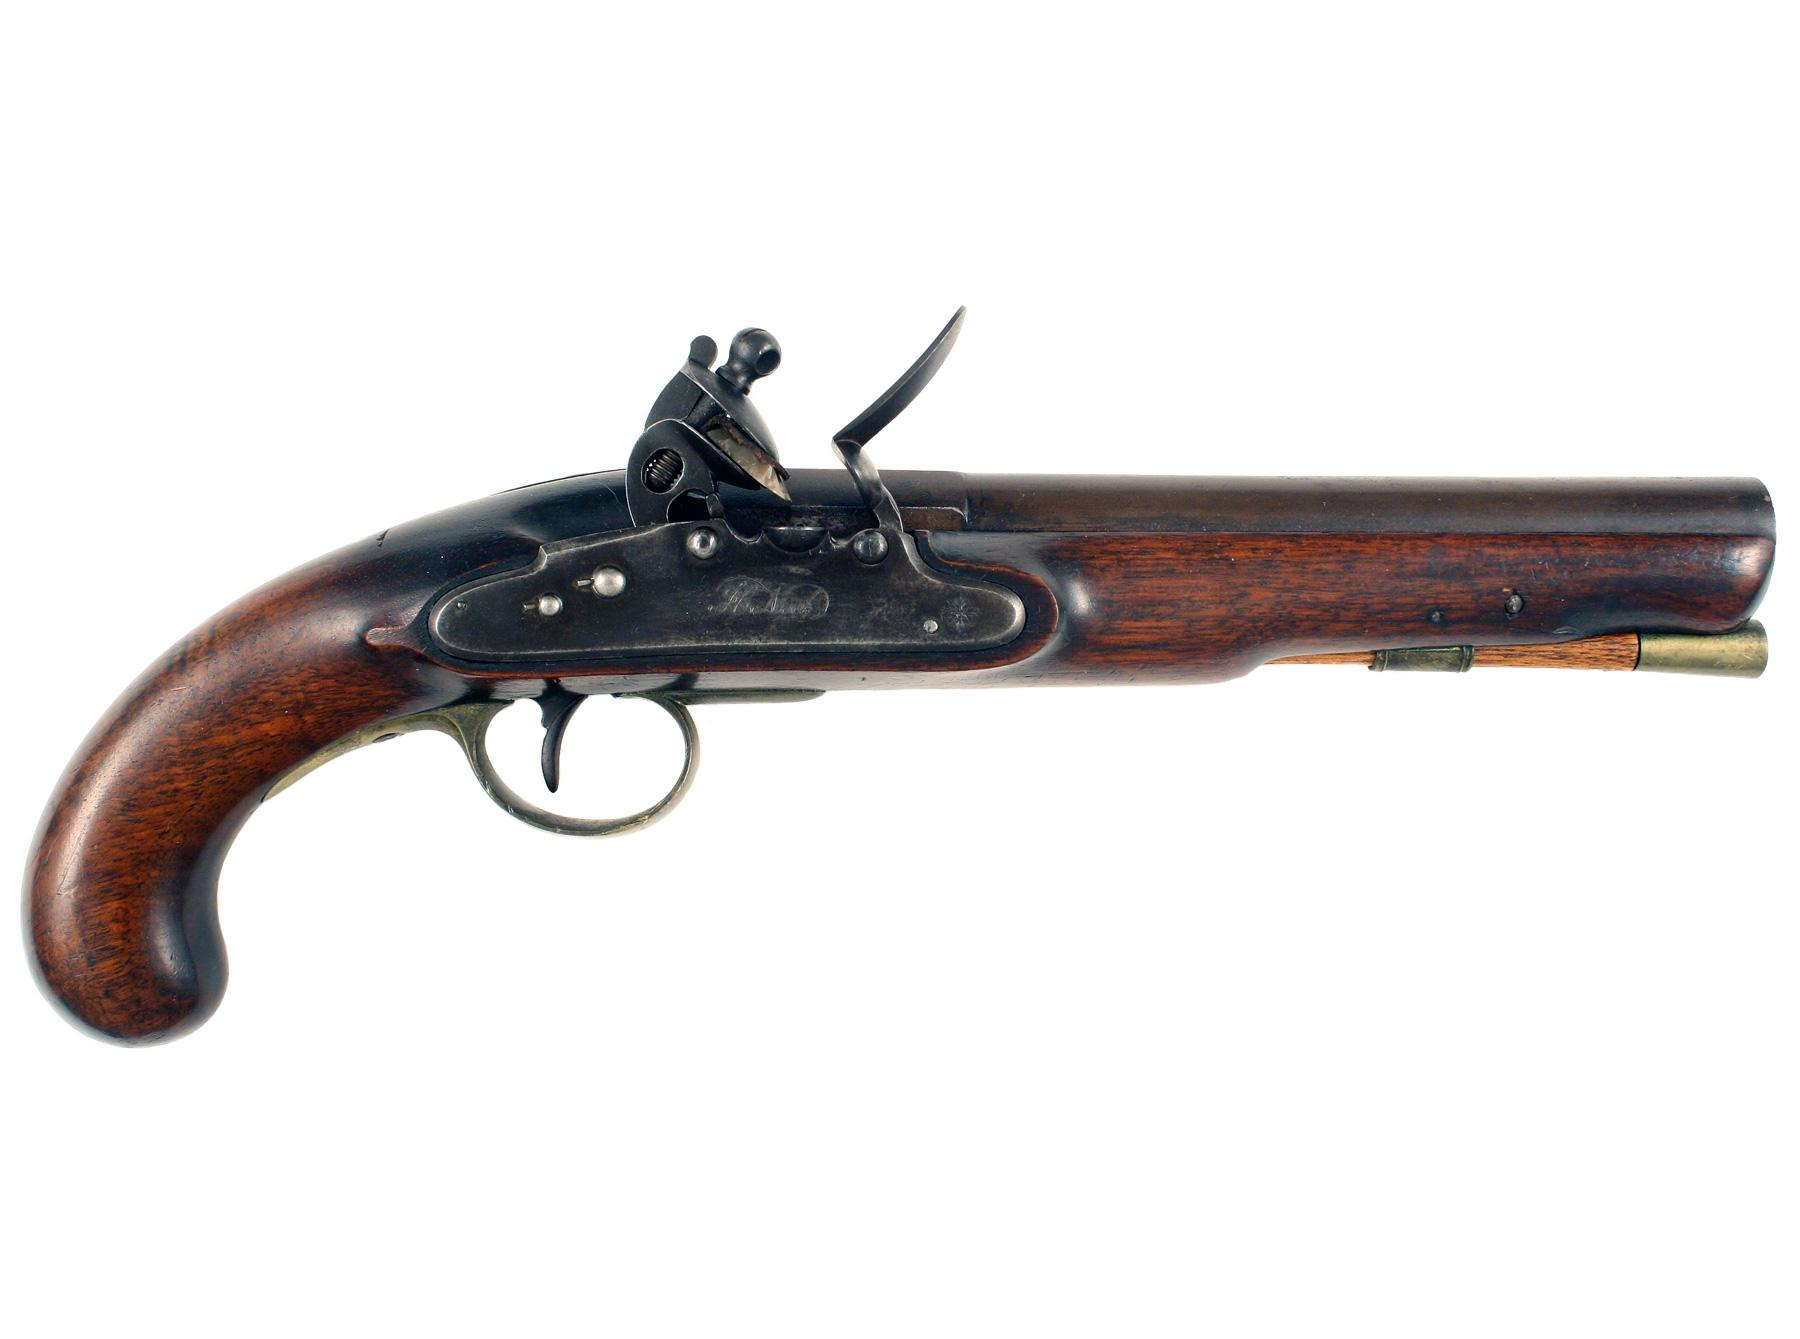 A Scarce Nock Screwless Lock Flintlock Pistol